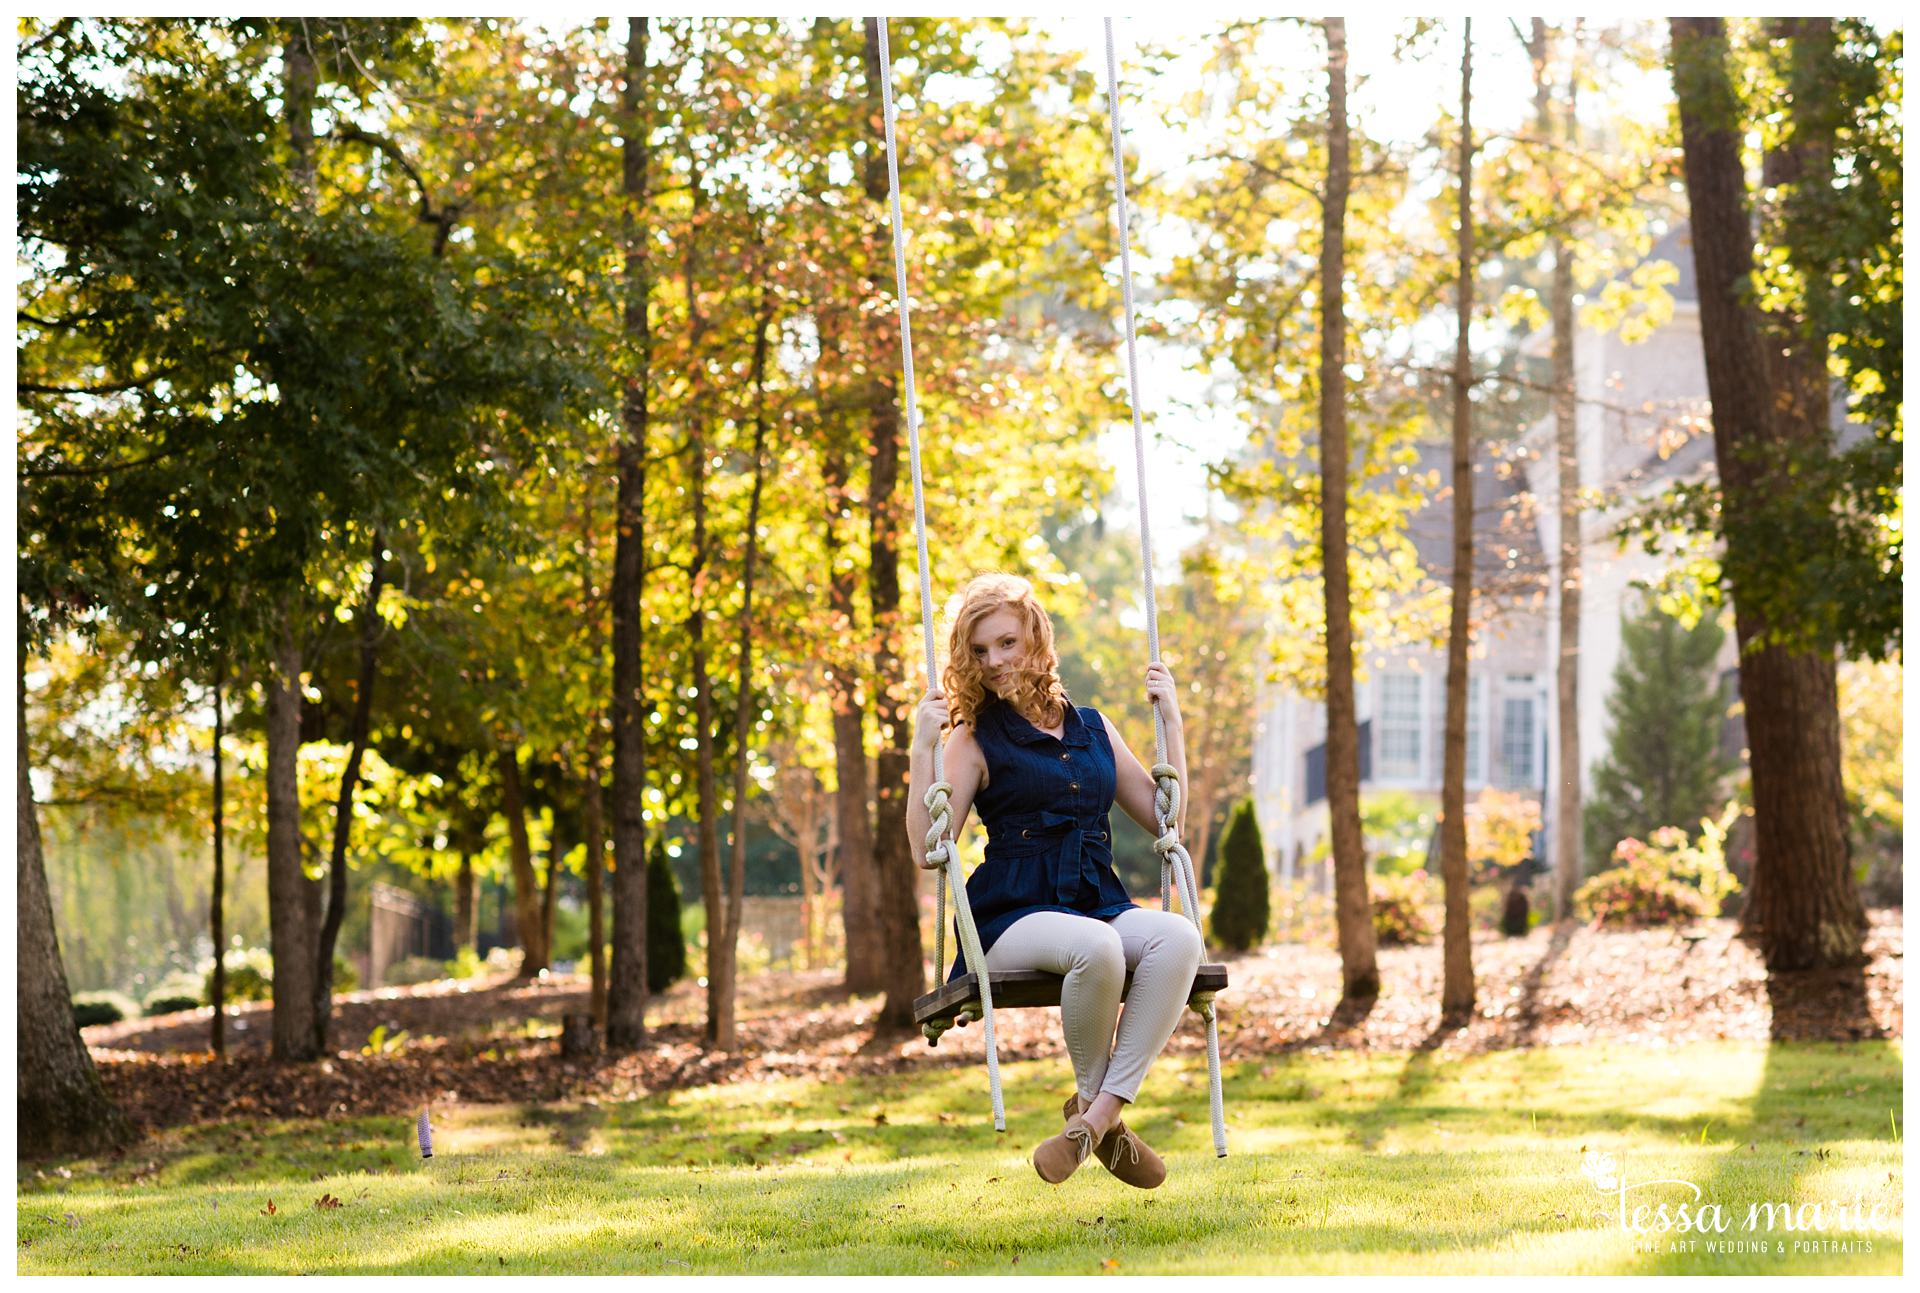 tessa_marie_weddings_legacy_story_focused_wedding_pictures_atlanta_wedding_photographer_family_pictures_portrait_Fine_art_memories_mothers_day_spring_moments_0350